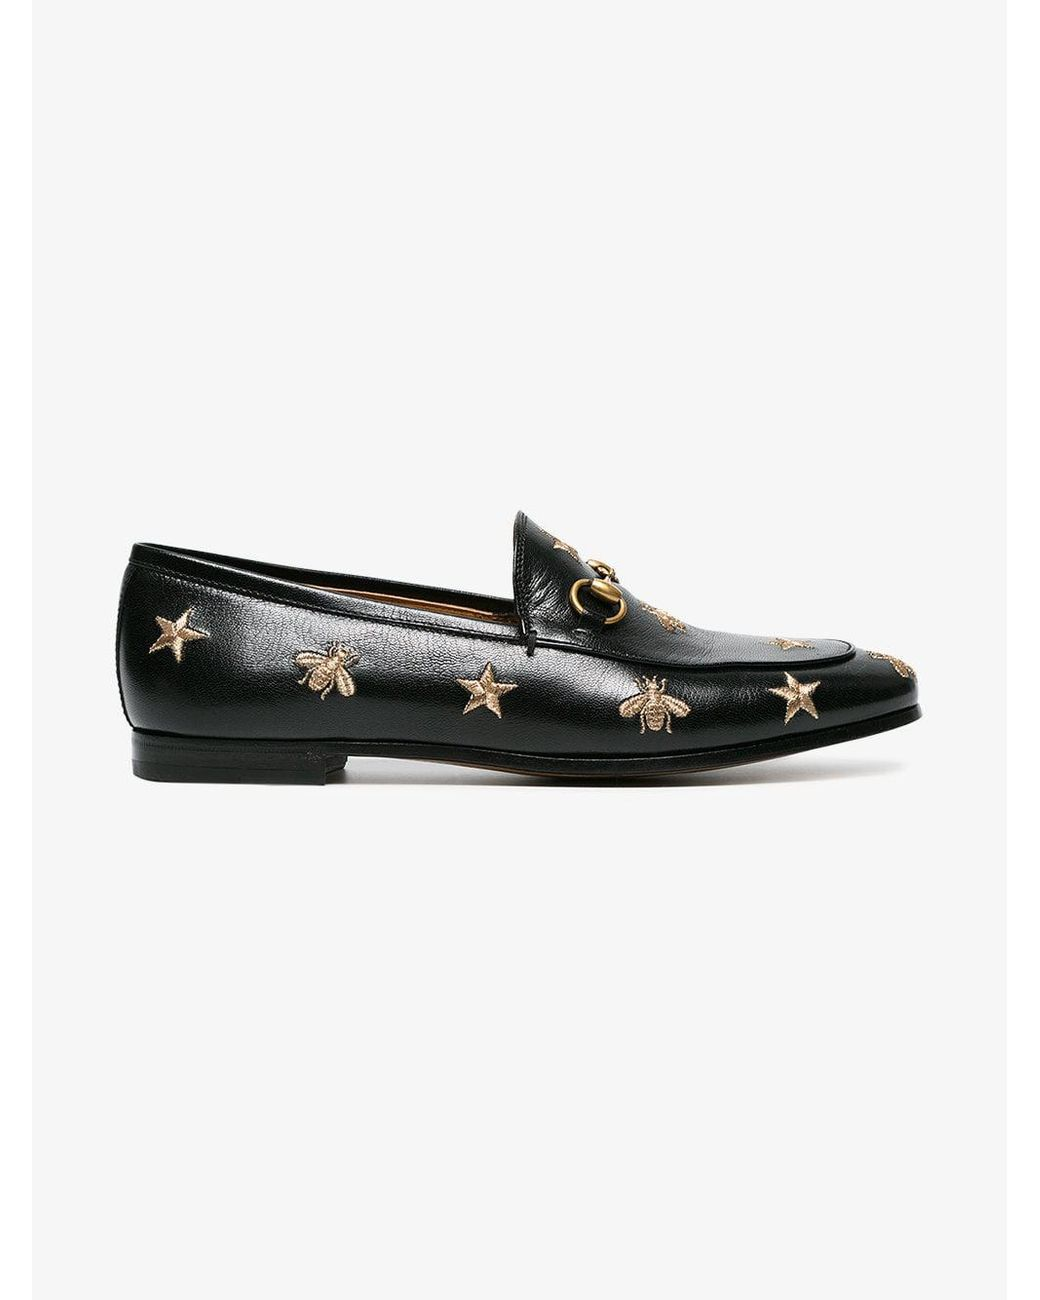 80eb9237388 Lyst - Gucci Jordaan Embroidered Leather Loafer in Black